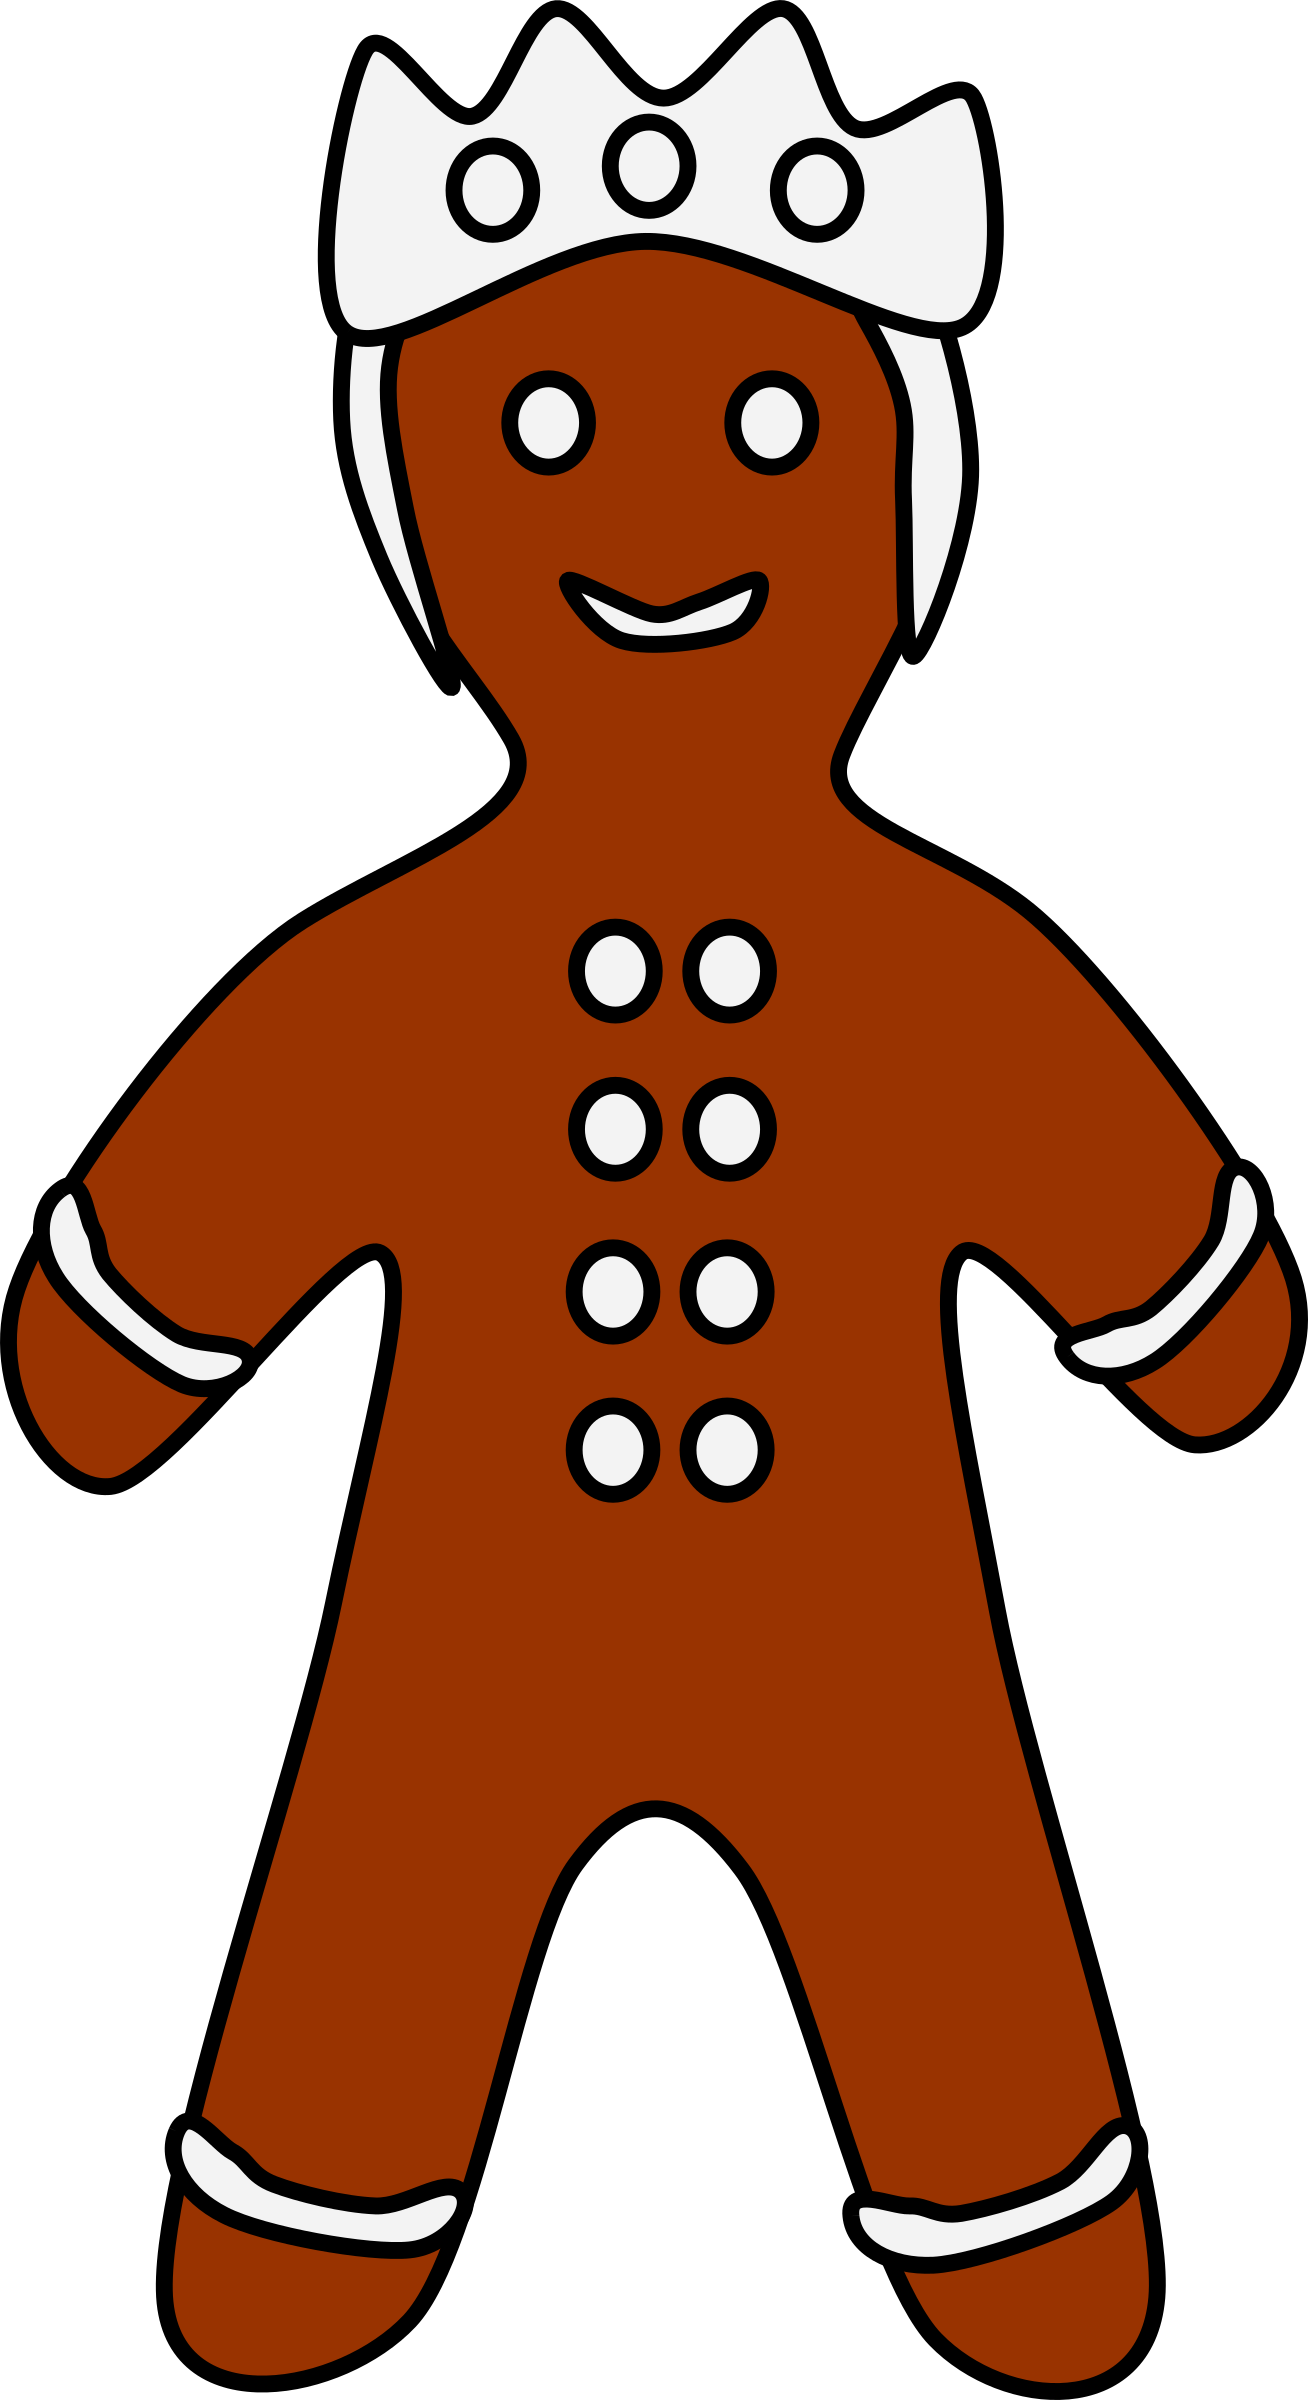 Gingerbread king (many buttons) by barnheartowl